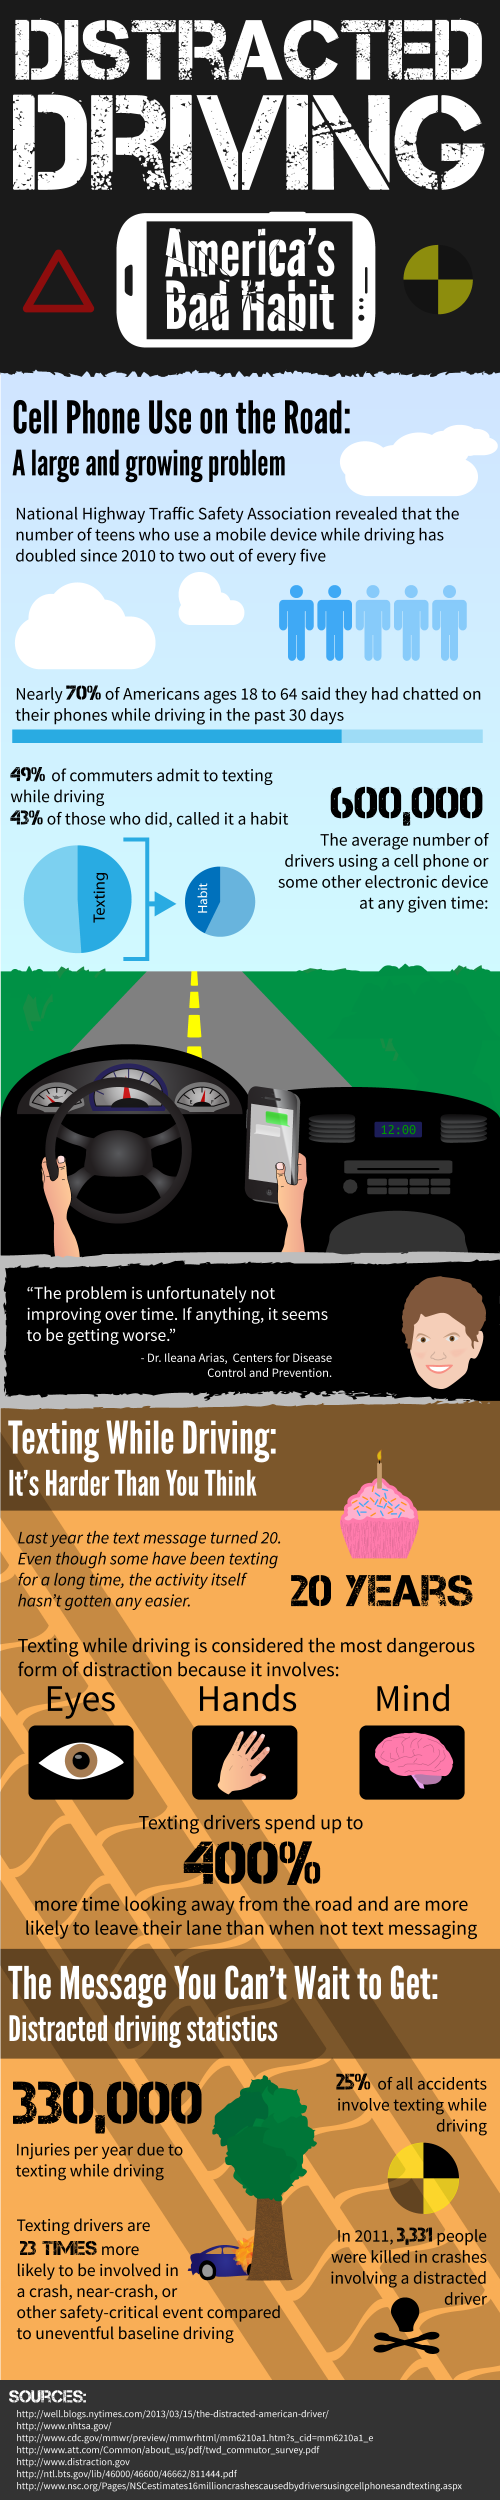 Distracted Driving - America